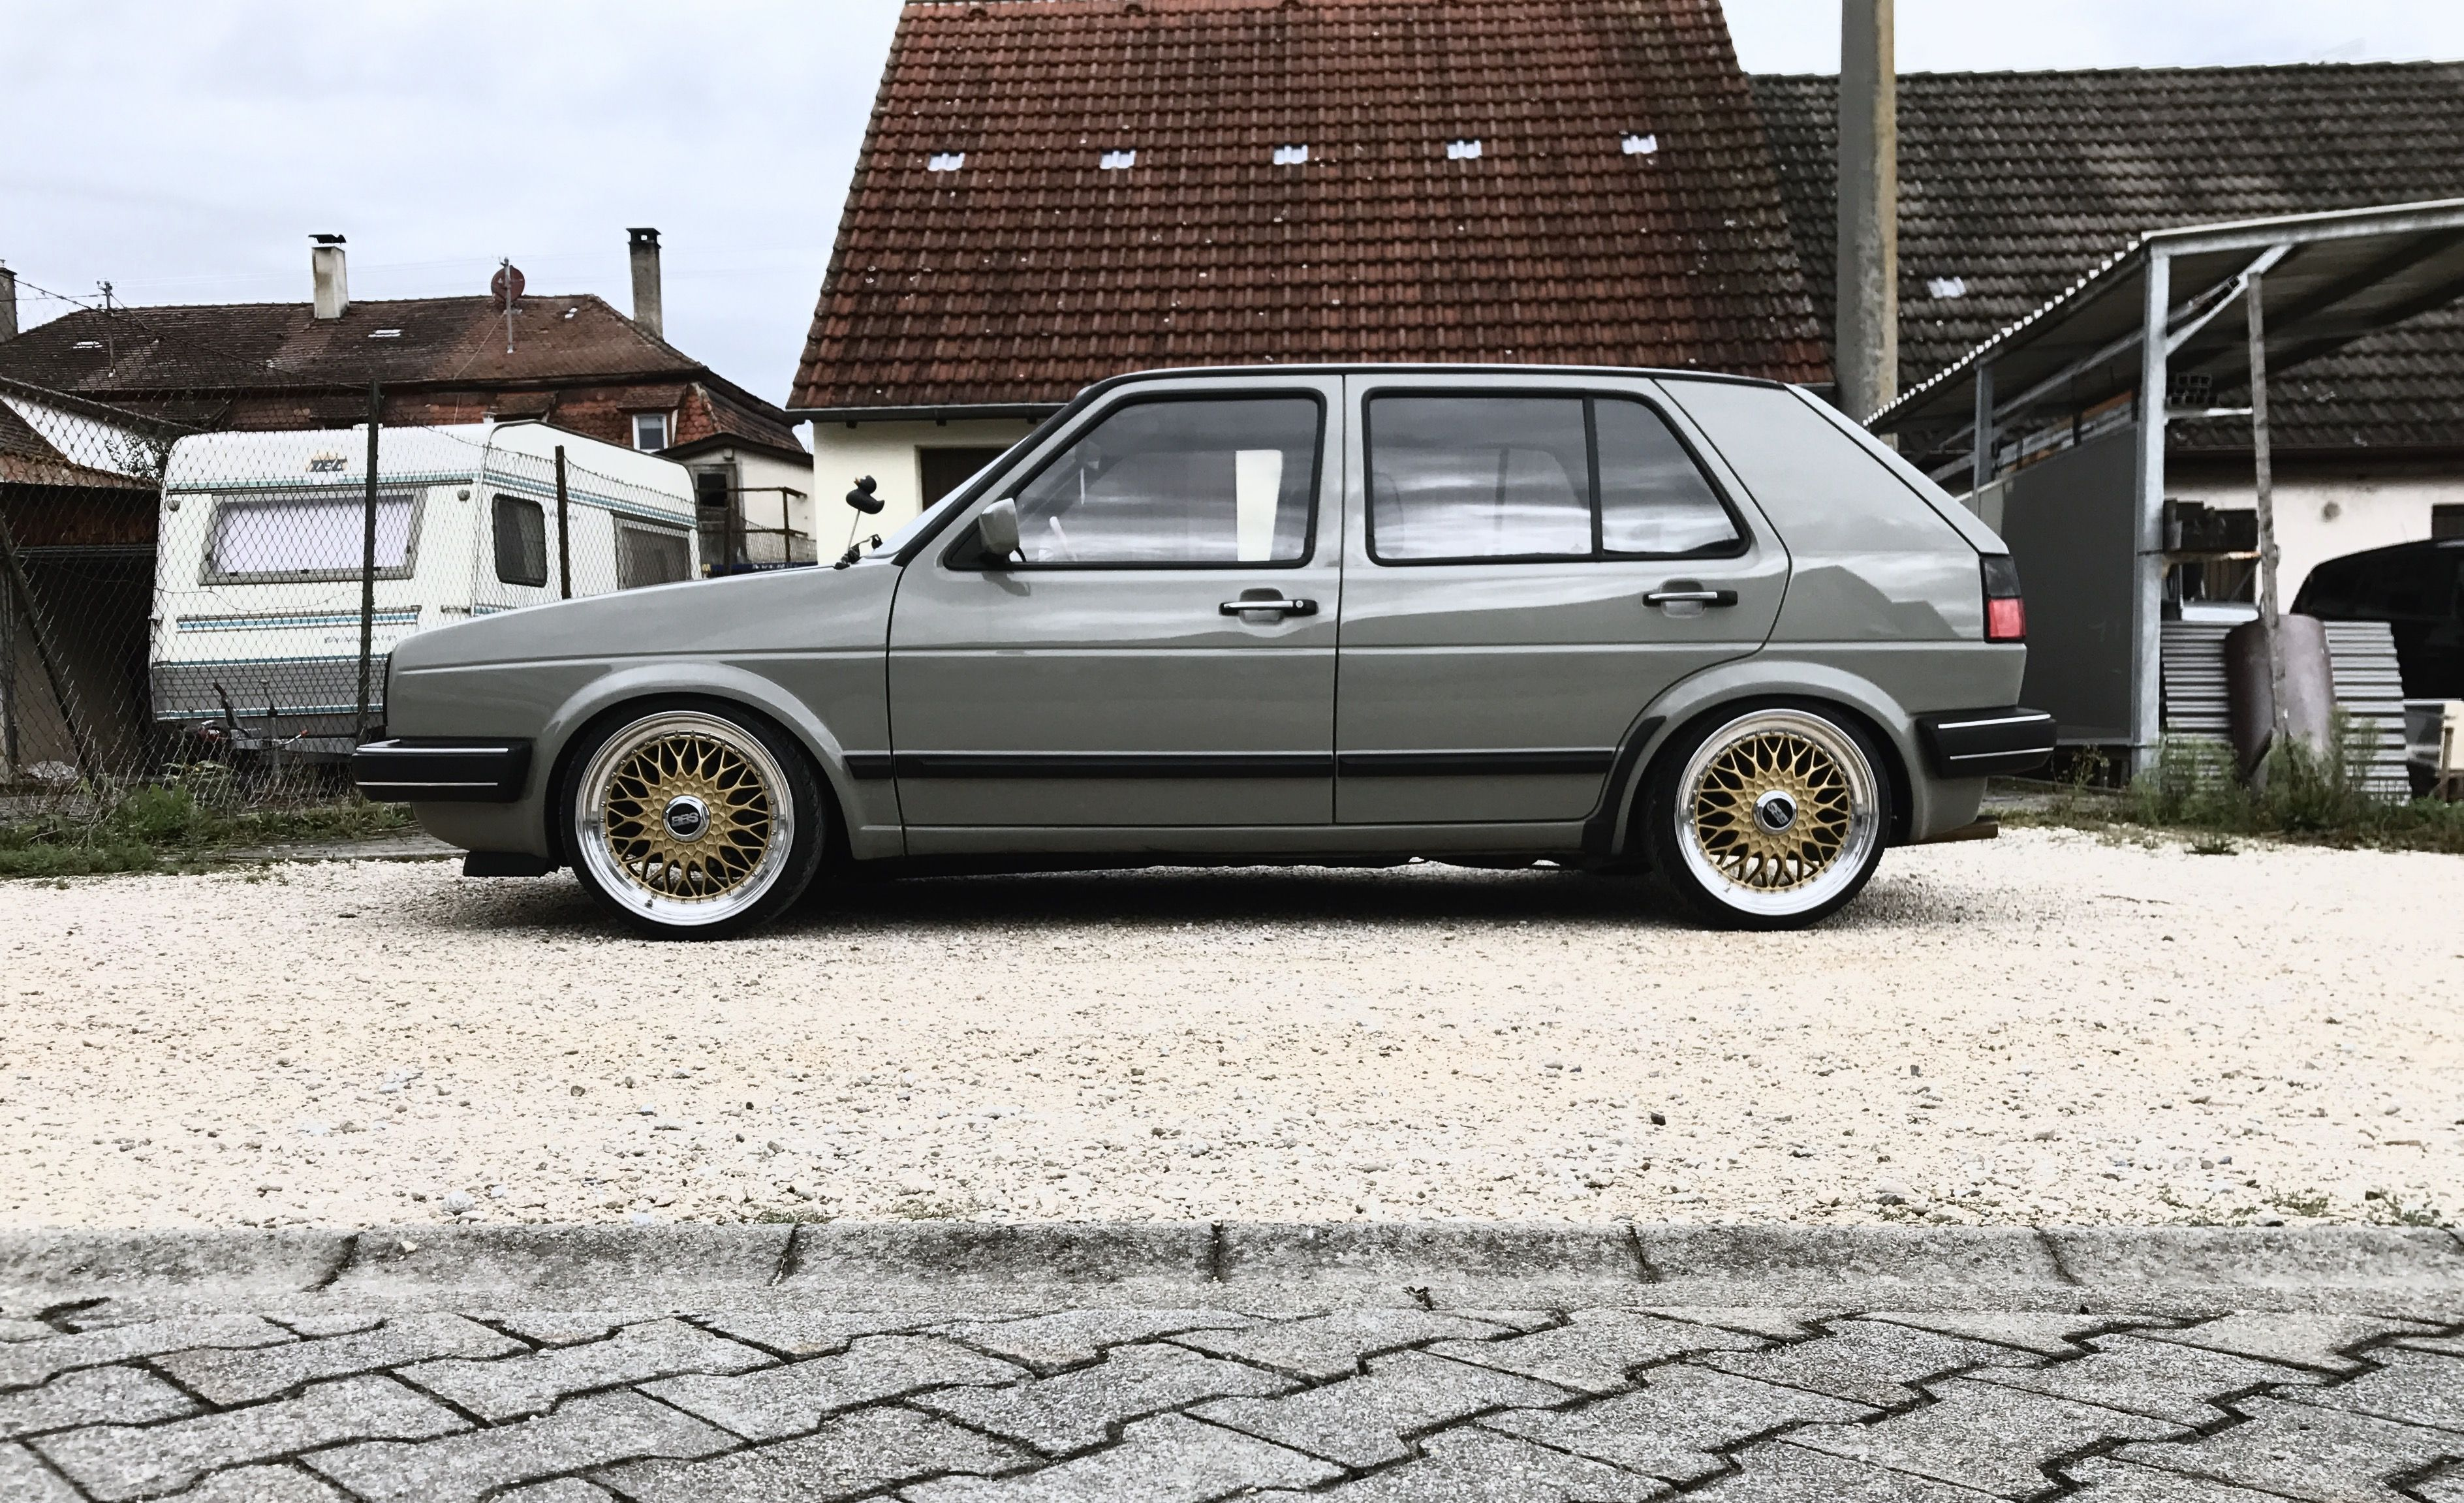 vw golf 2 mk 2 volkswagen bbs gold retro oldschool classic. Black Bedroom Furniture Sets. Home Design Ideas